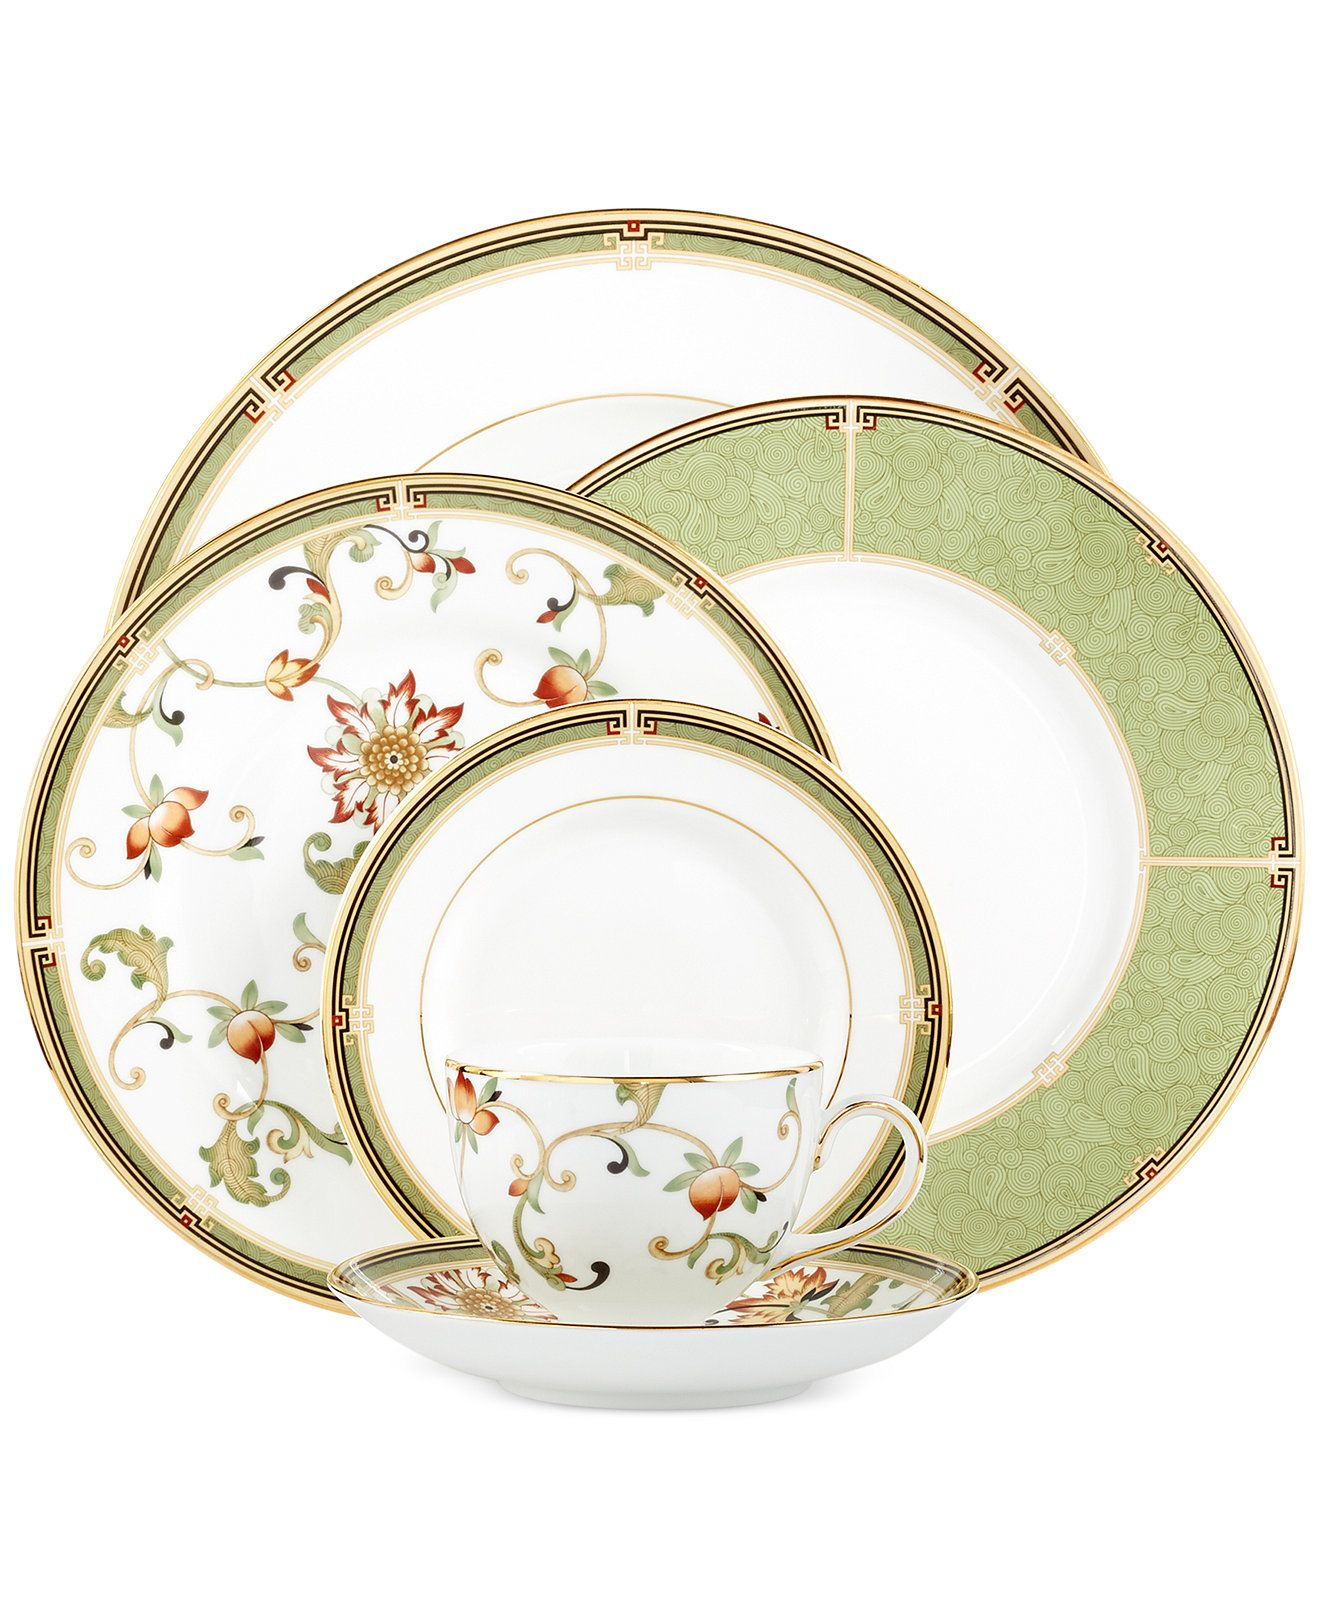 Oberon Collection Fine China Dinnerware China Dinnerware Sets